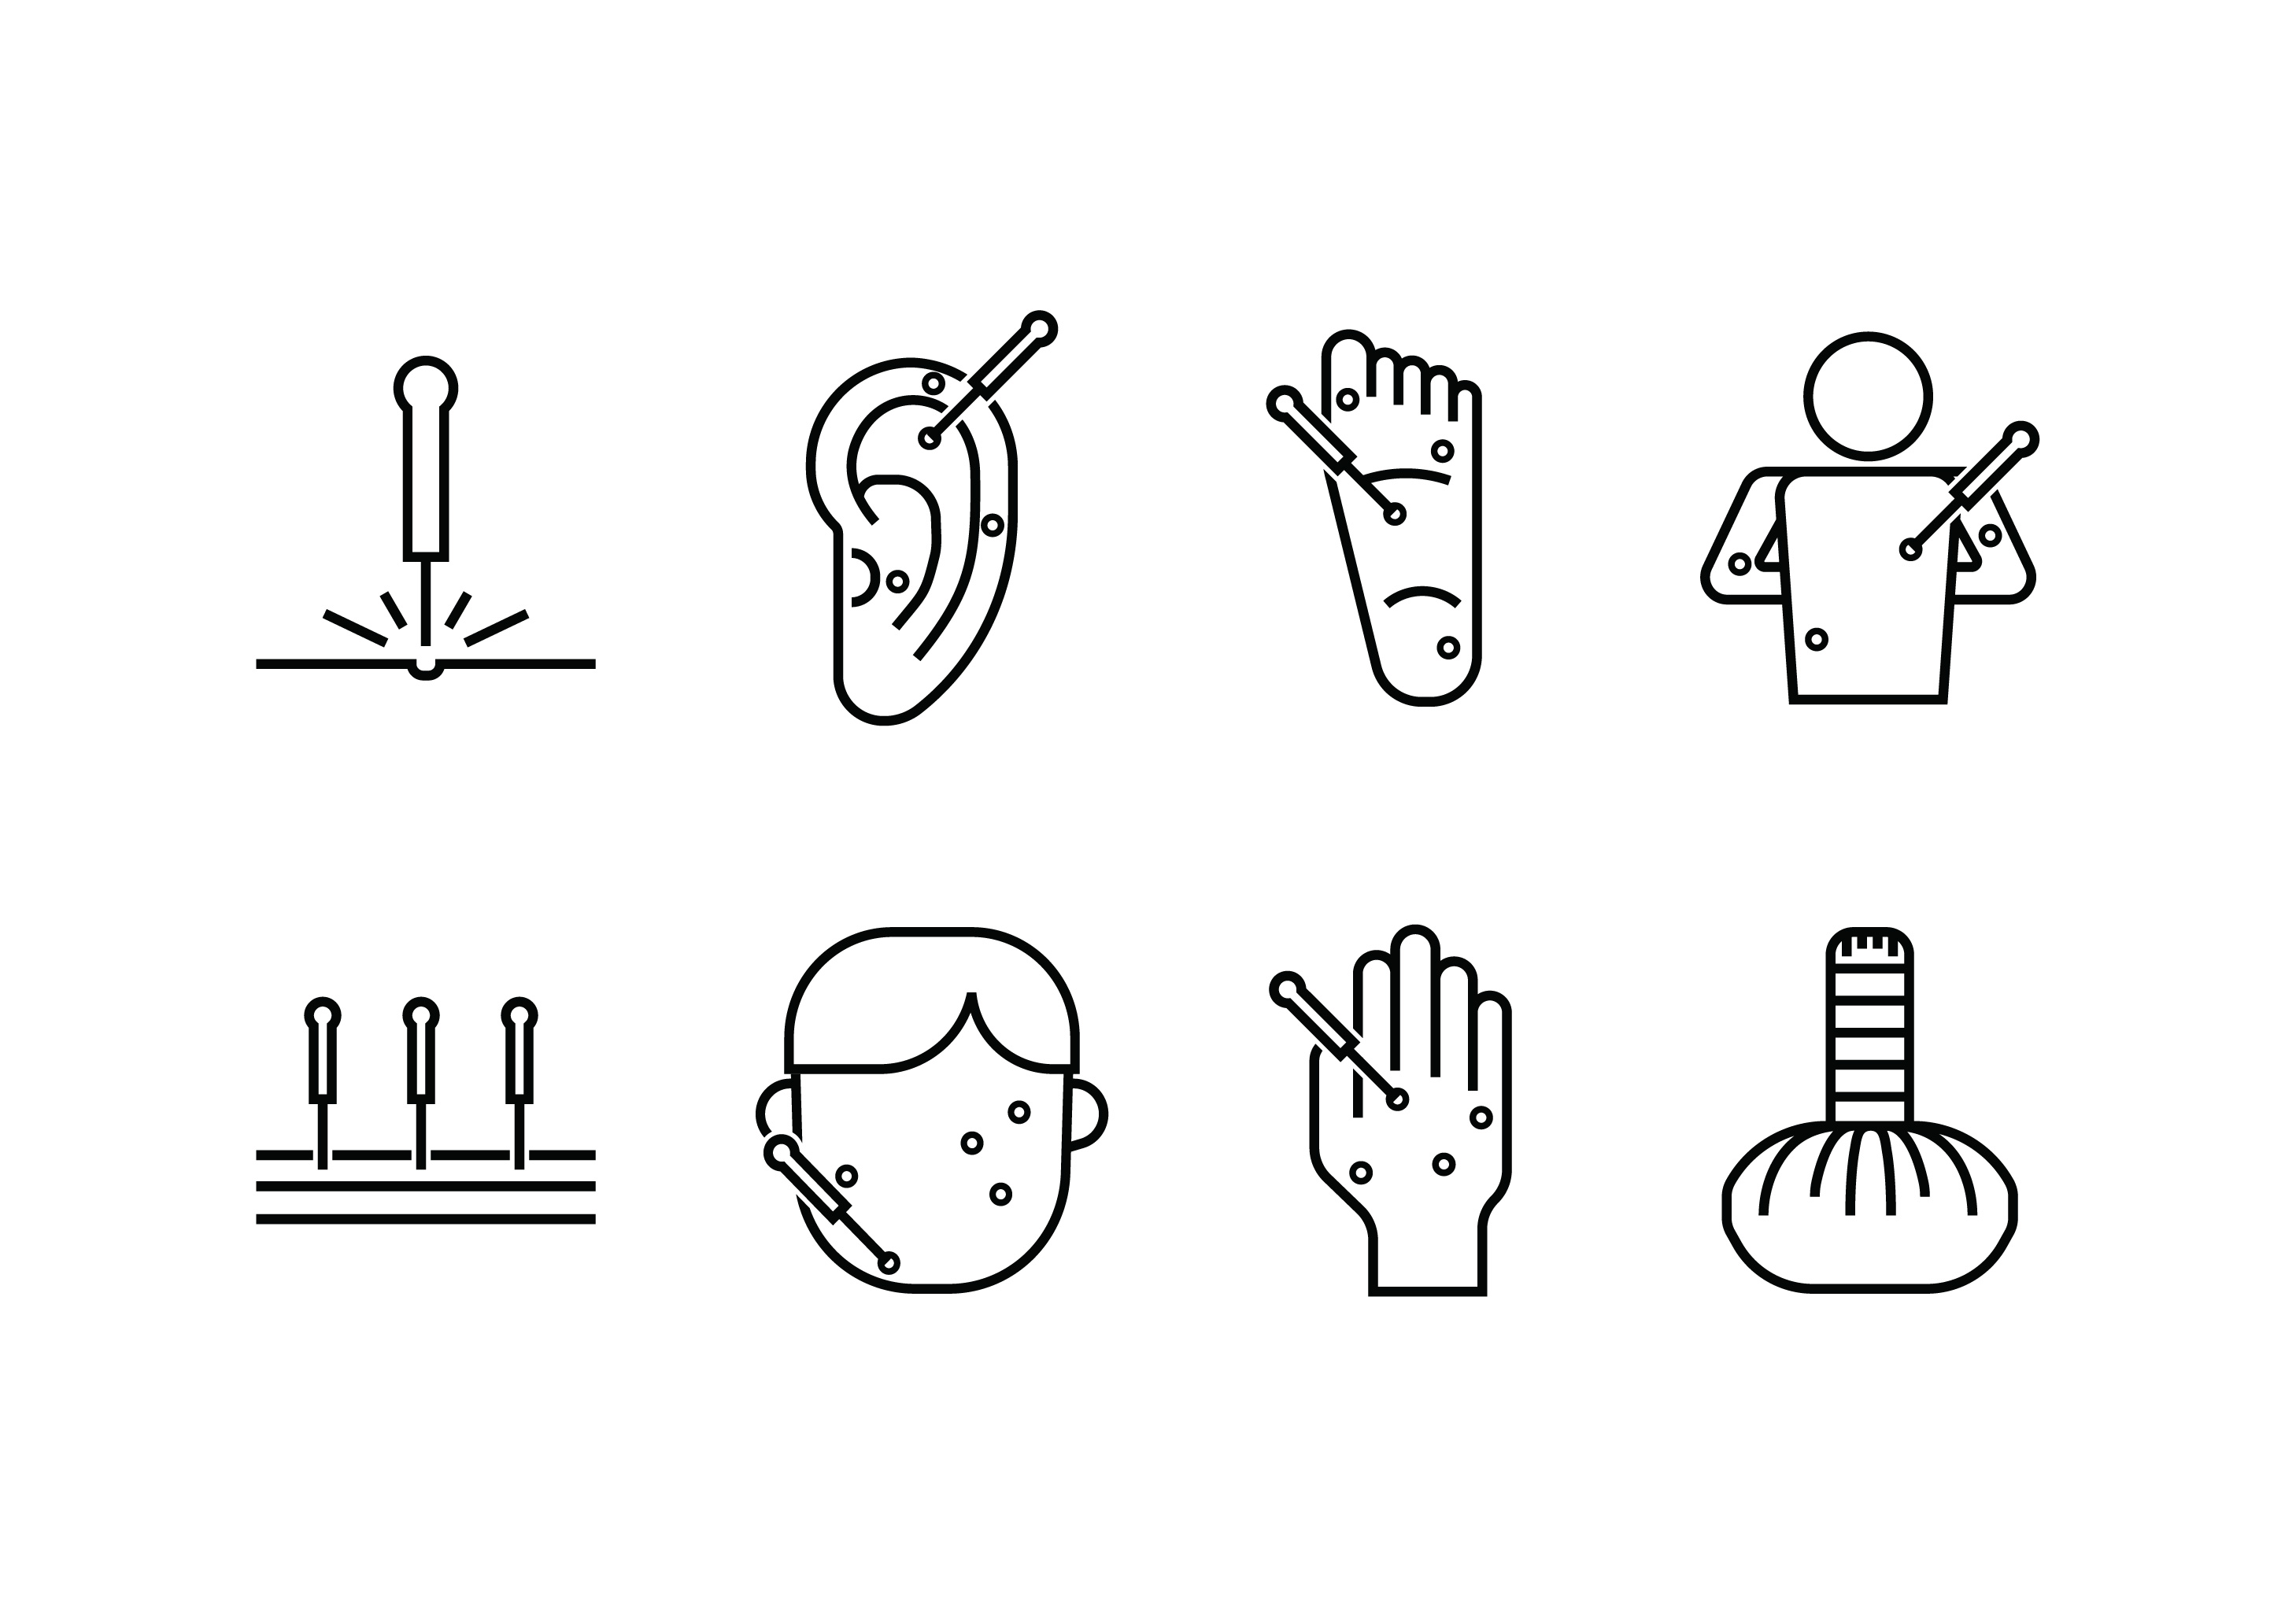 acupuncture set icon download free vector art stock